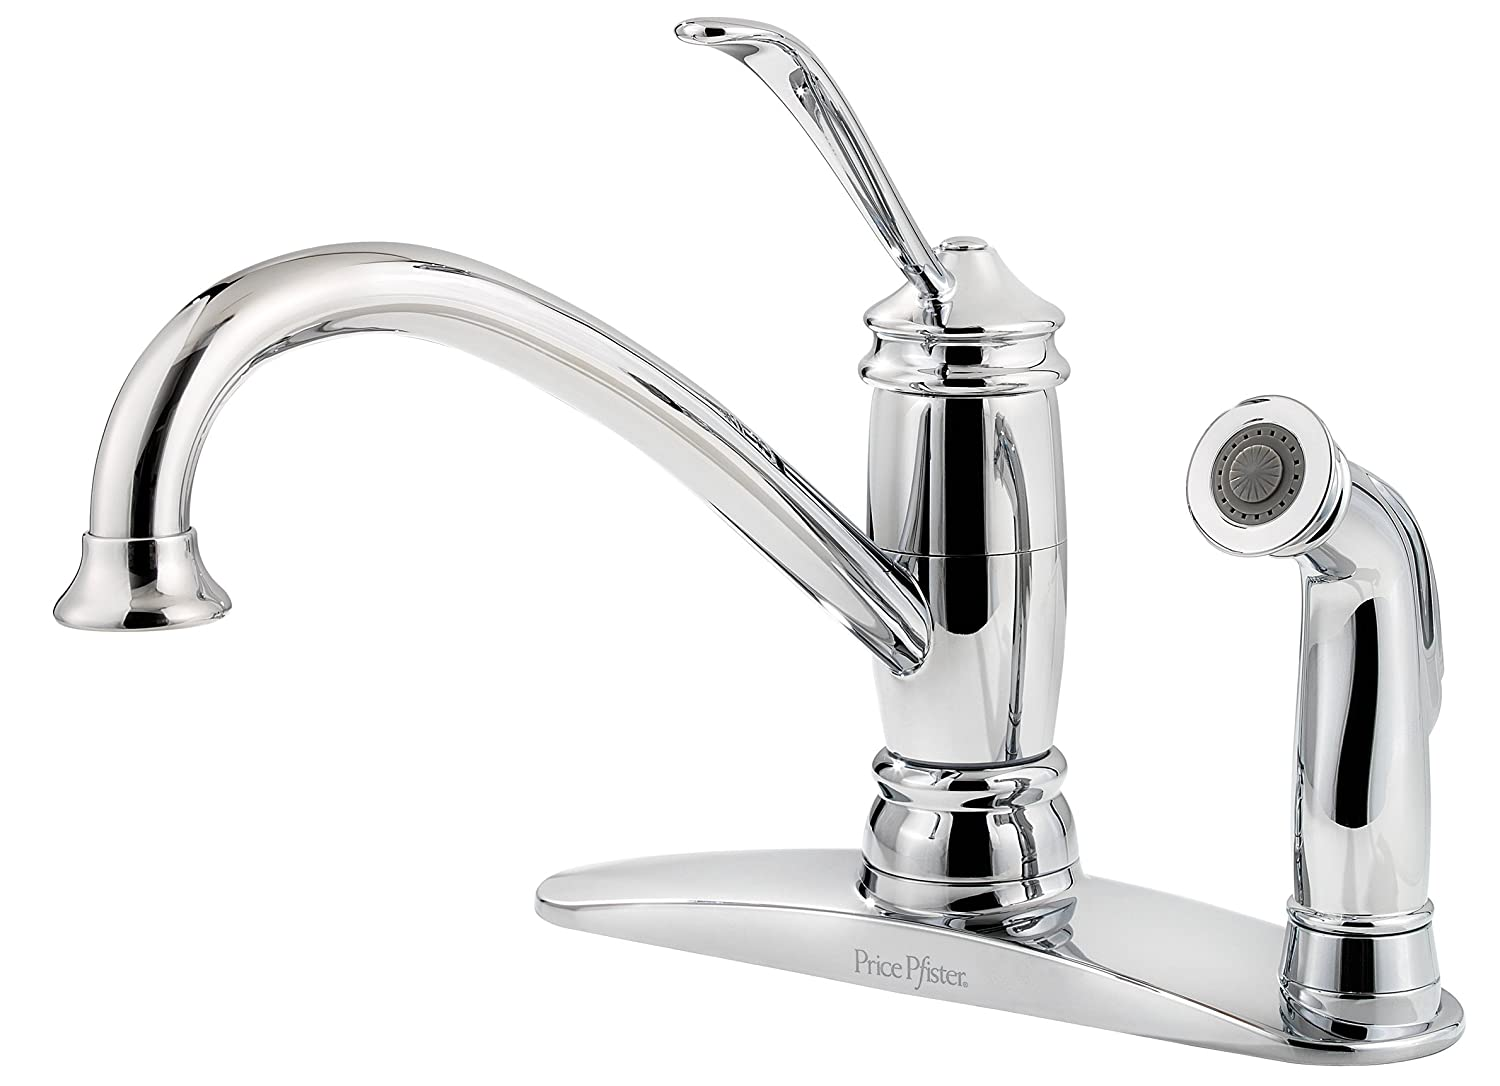 Pfister F0343ALC Brookwood 1-Handle Kitchen Faucet with Side Spray, Polished Chrome, 2.2 gpm